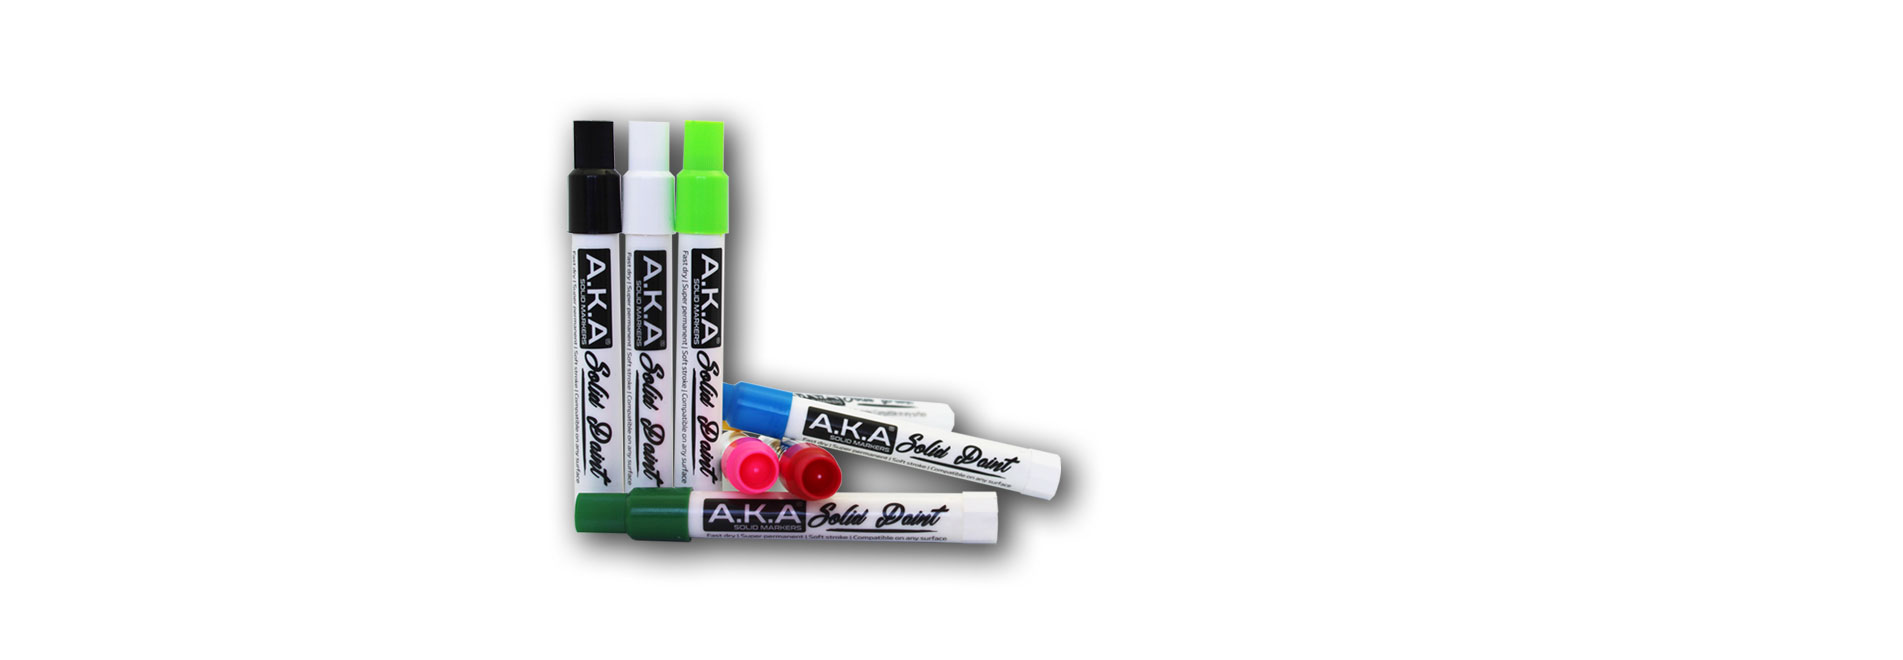 AKA Solid Paint Markers